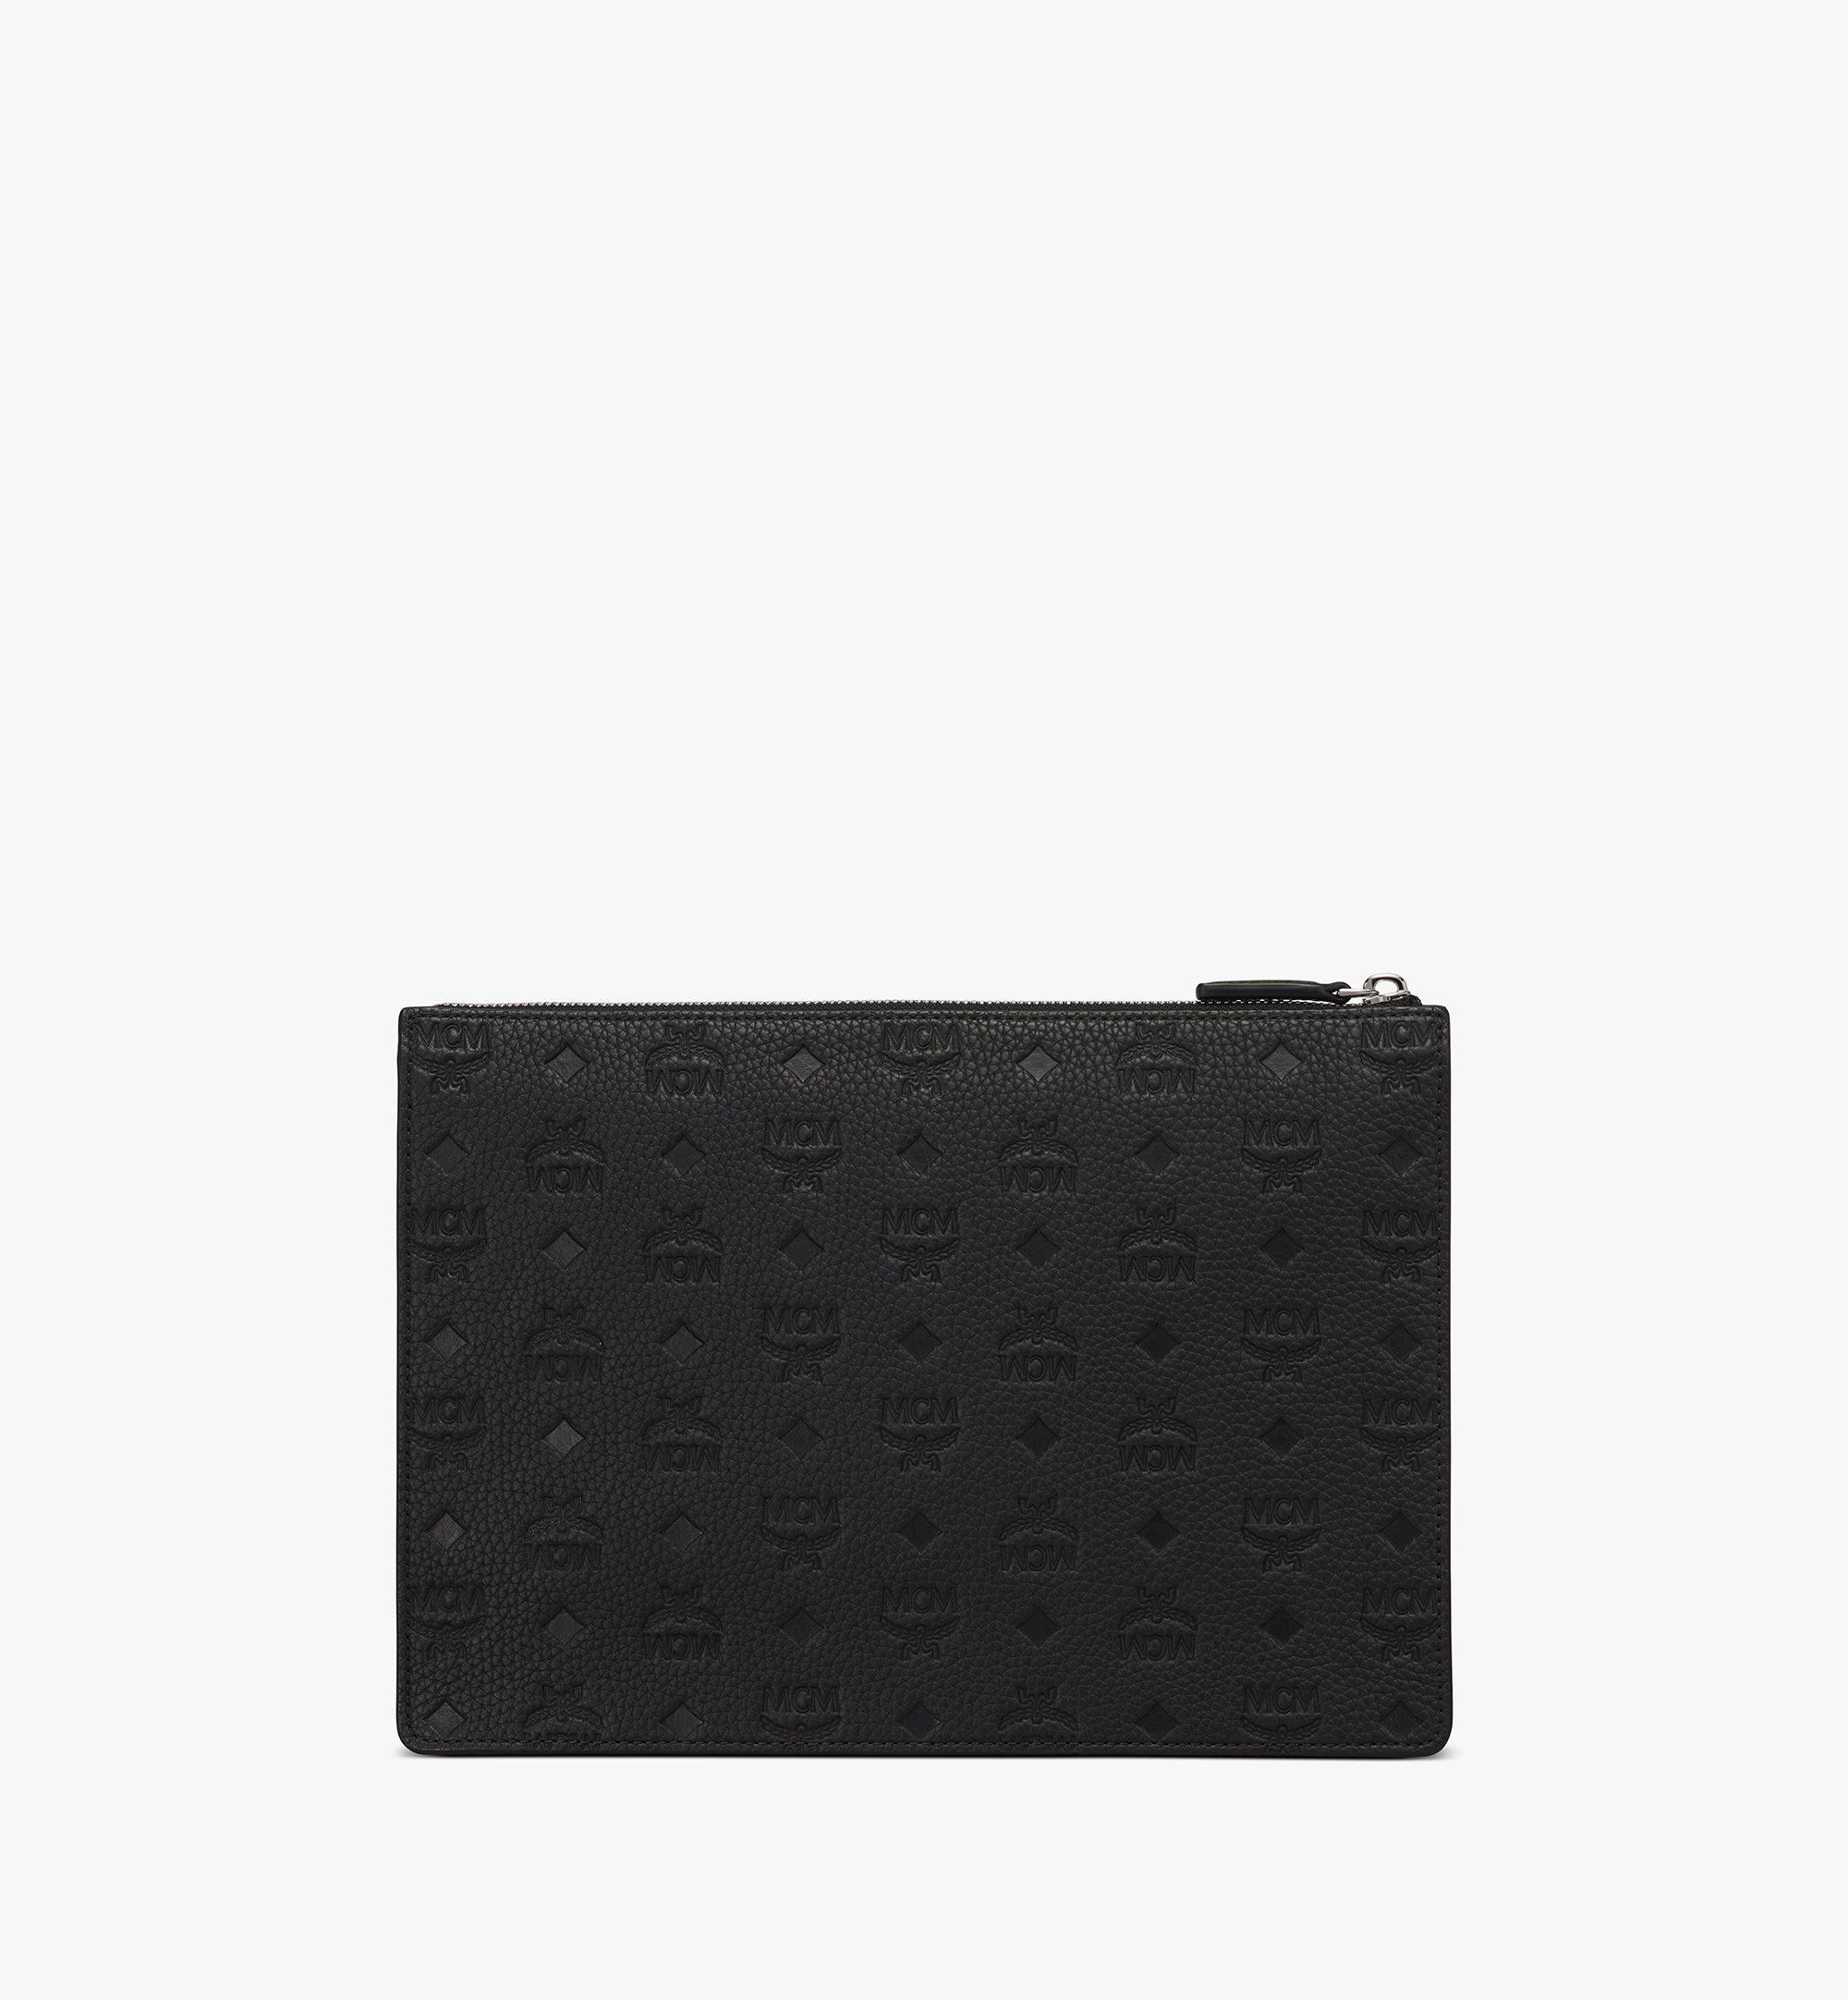 MCM Tivitat Document Holder in Monogram Leather Black MXZASBT01BK001 Alternate View 1